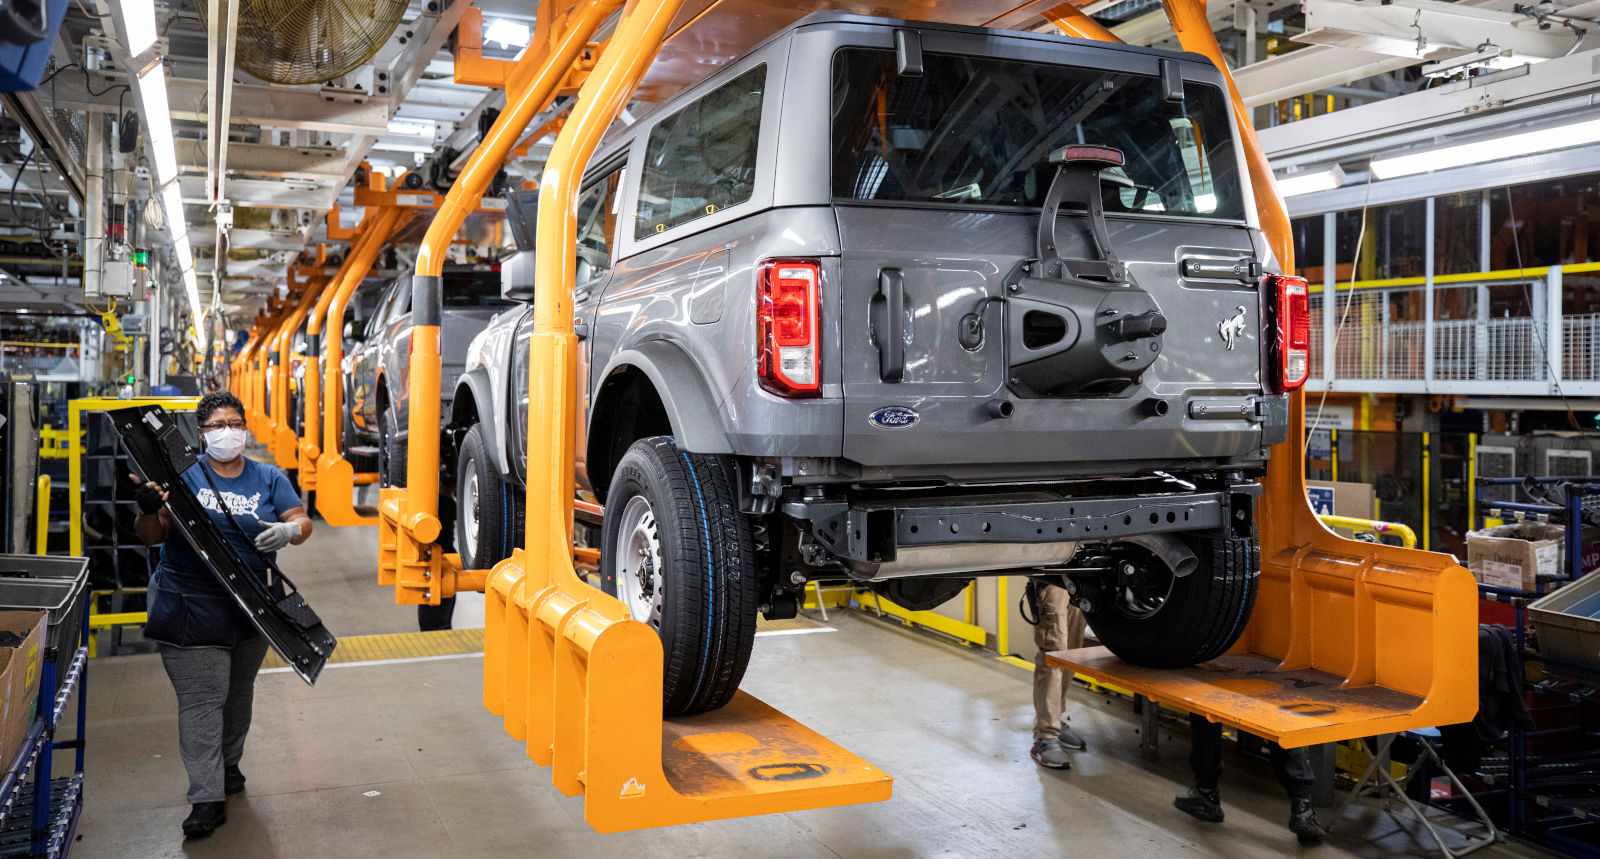 2021 Ford Bronco Production Underway, Shipments Begin